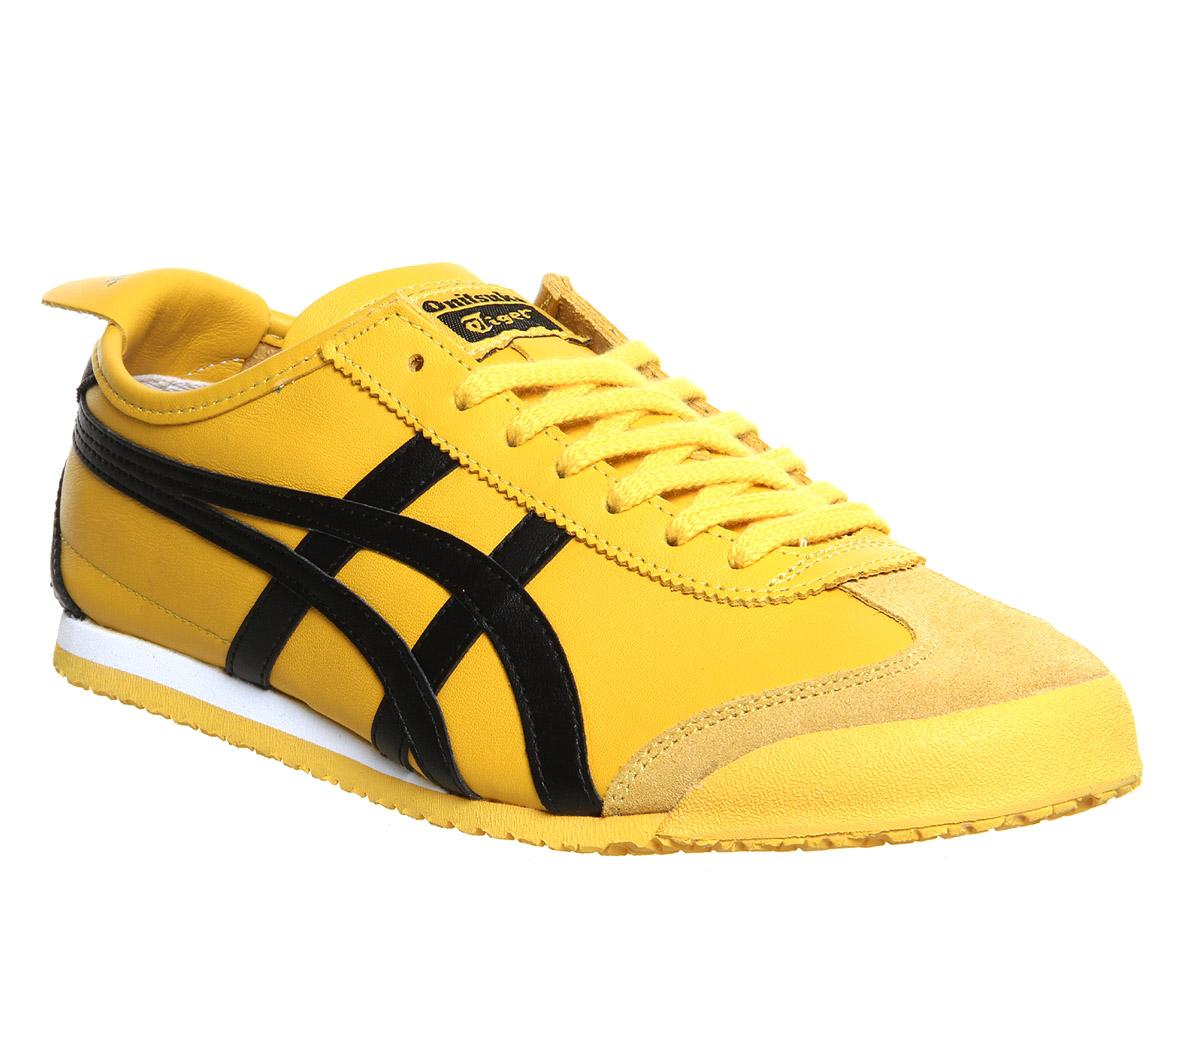 onitsuka tiger mexico 66 yellow black womens trainers